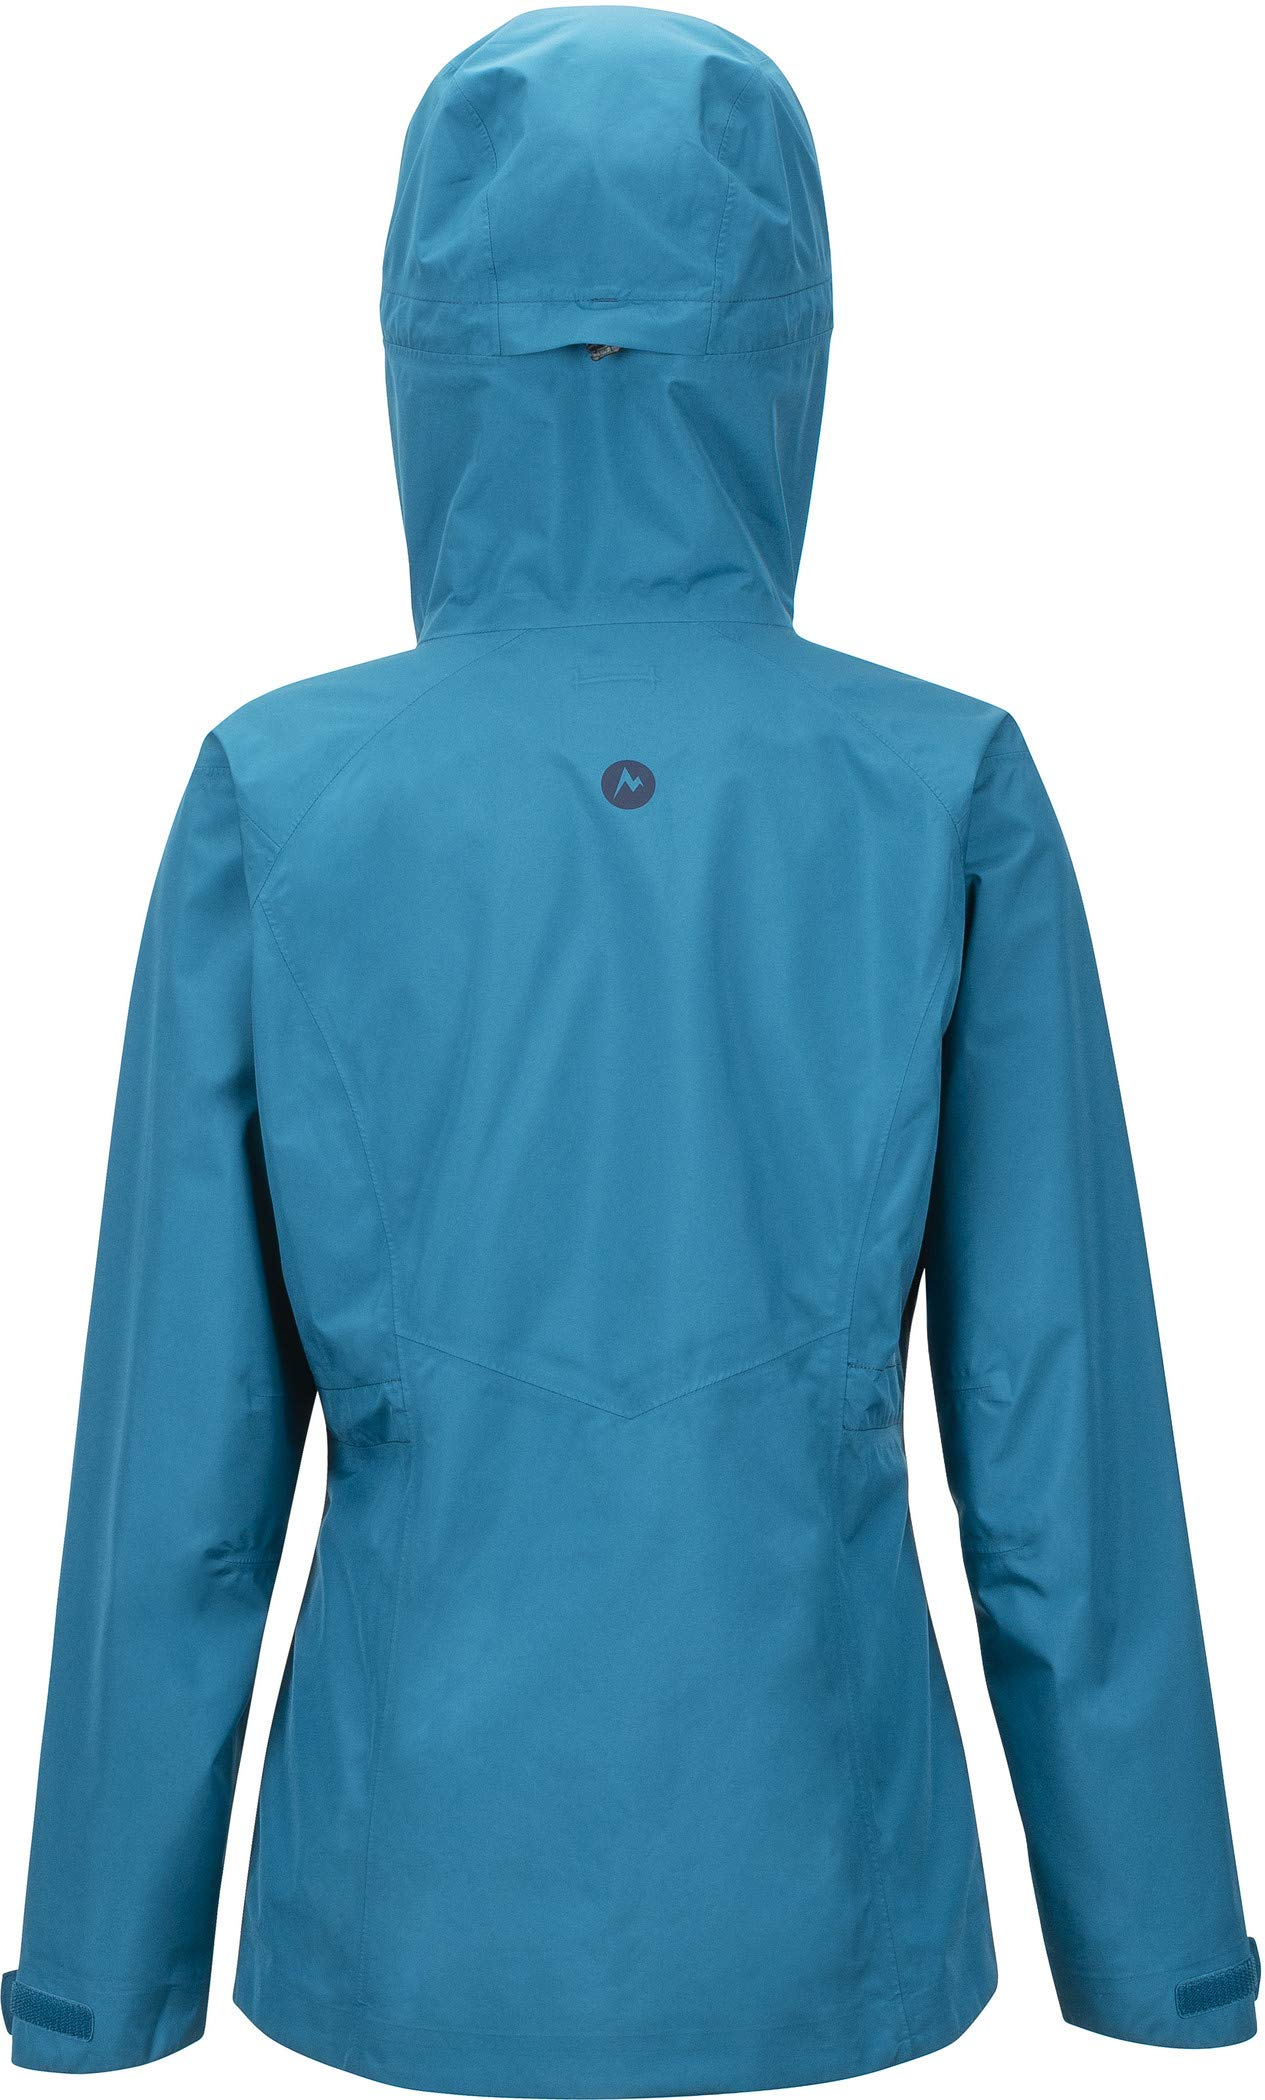 71PuT735rYL - Marmot Women's Wm's Knife Edge Hardshell Rain Jacket, Raincoat, Windproof, Waterproof, Breathable